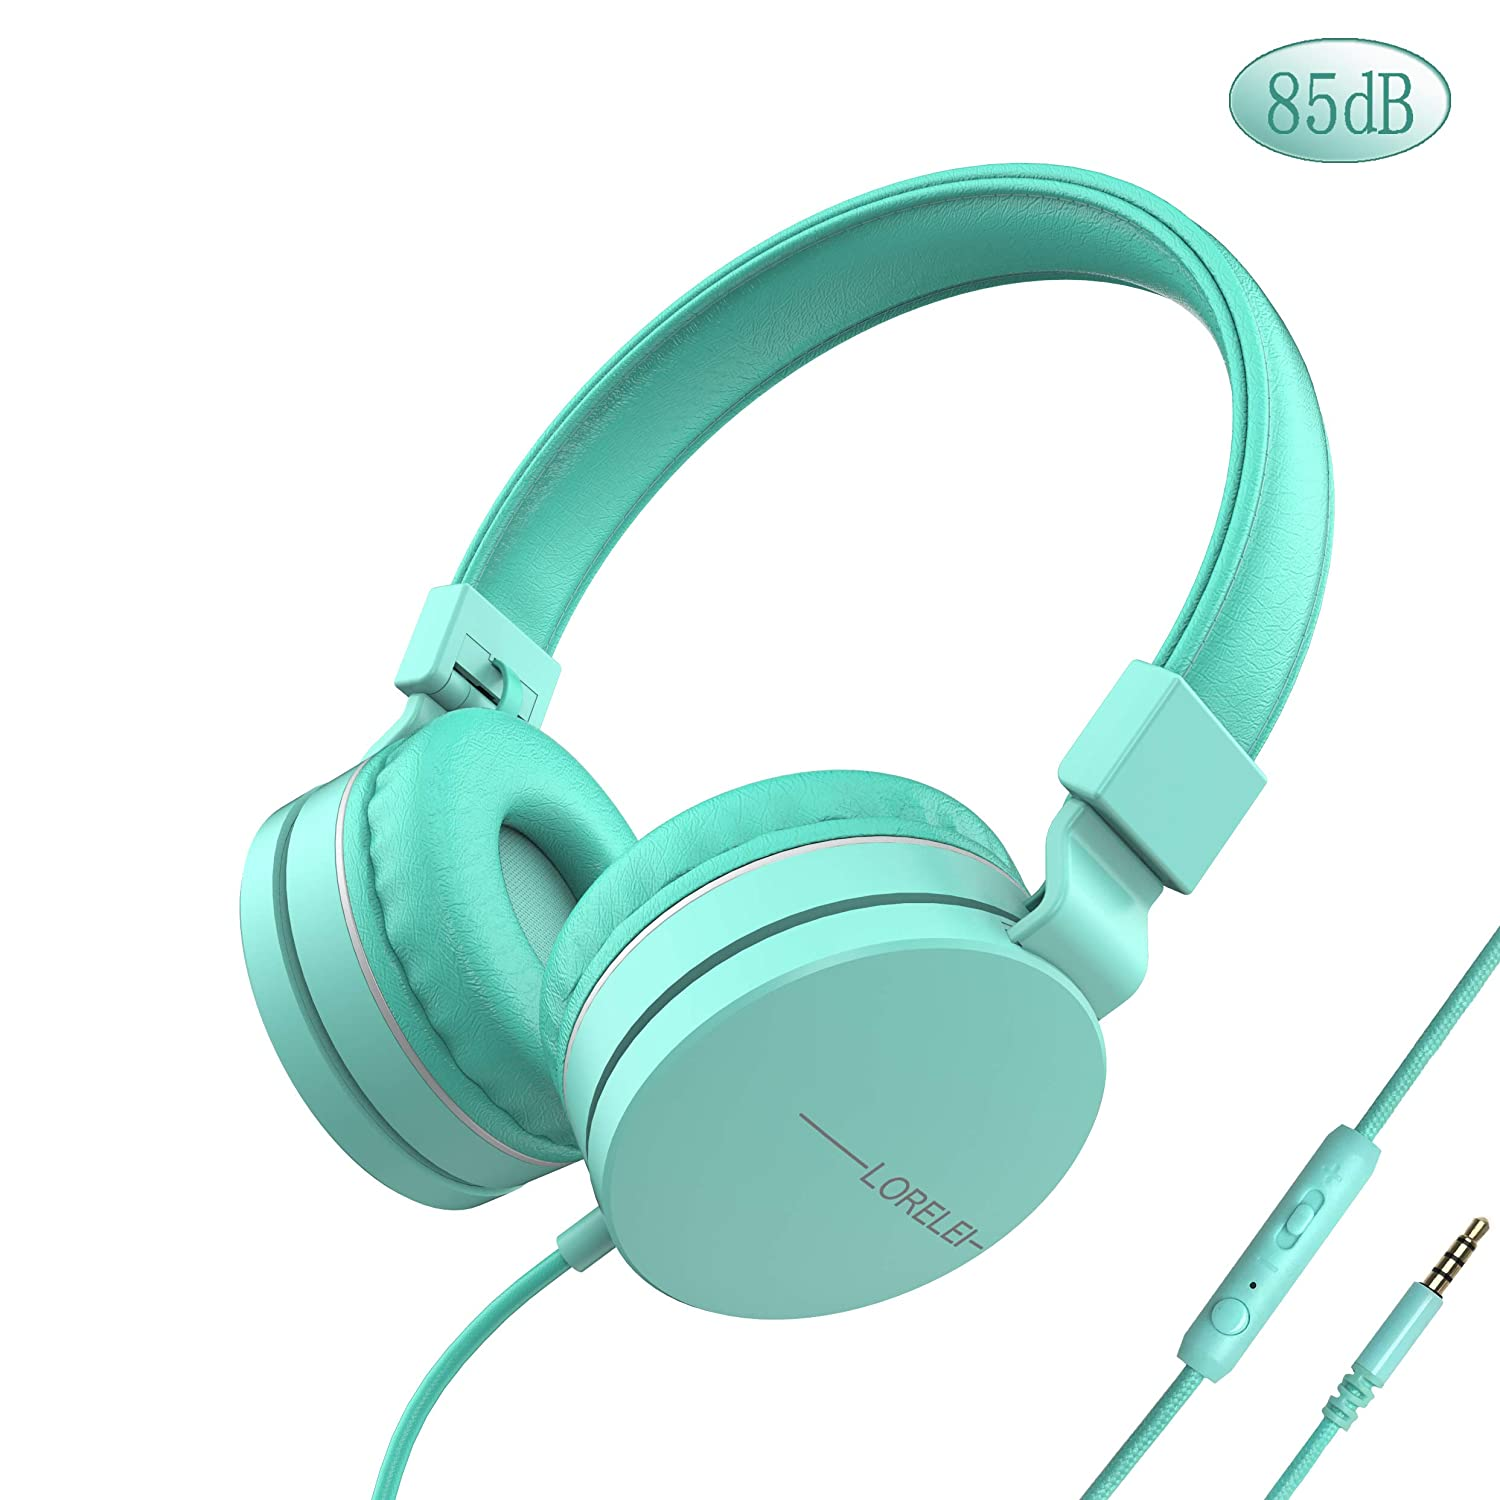 LORELEI L-01 Wied Kids Headphones Children Girls Boys Teens 85DB Volume Limiting with Mic and 3.5mm Socket Compatible Cellphone ipad comptuer MP3/4 (Mint Green)